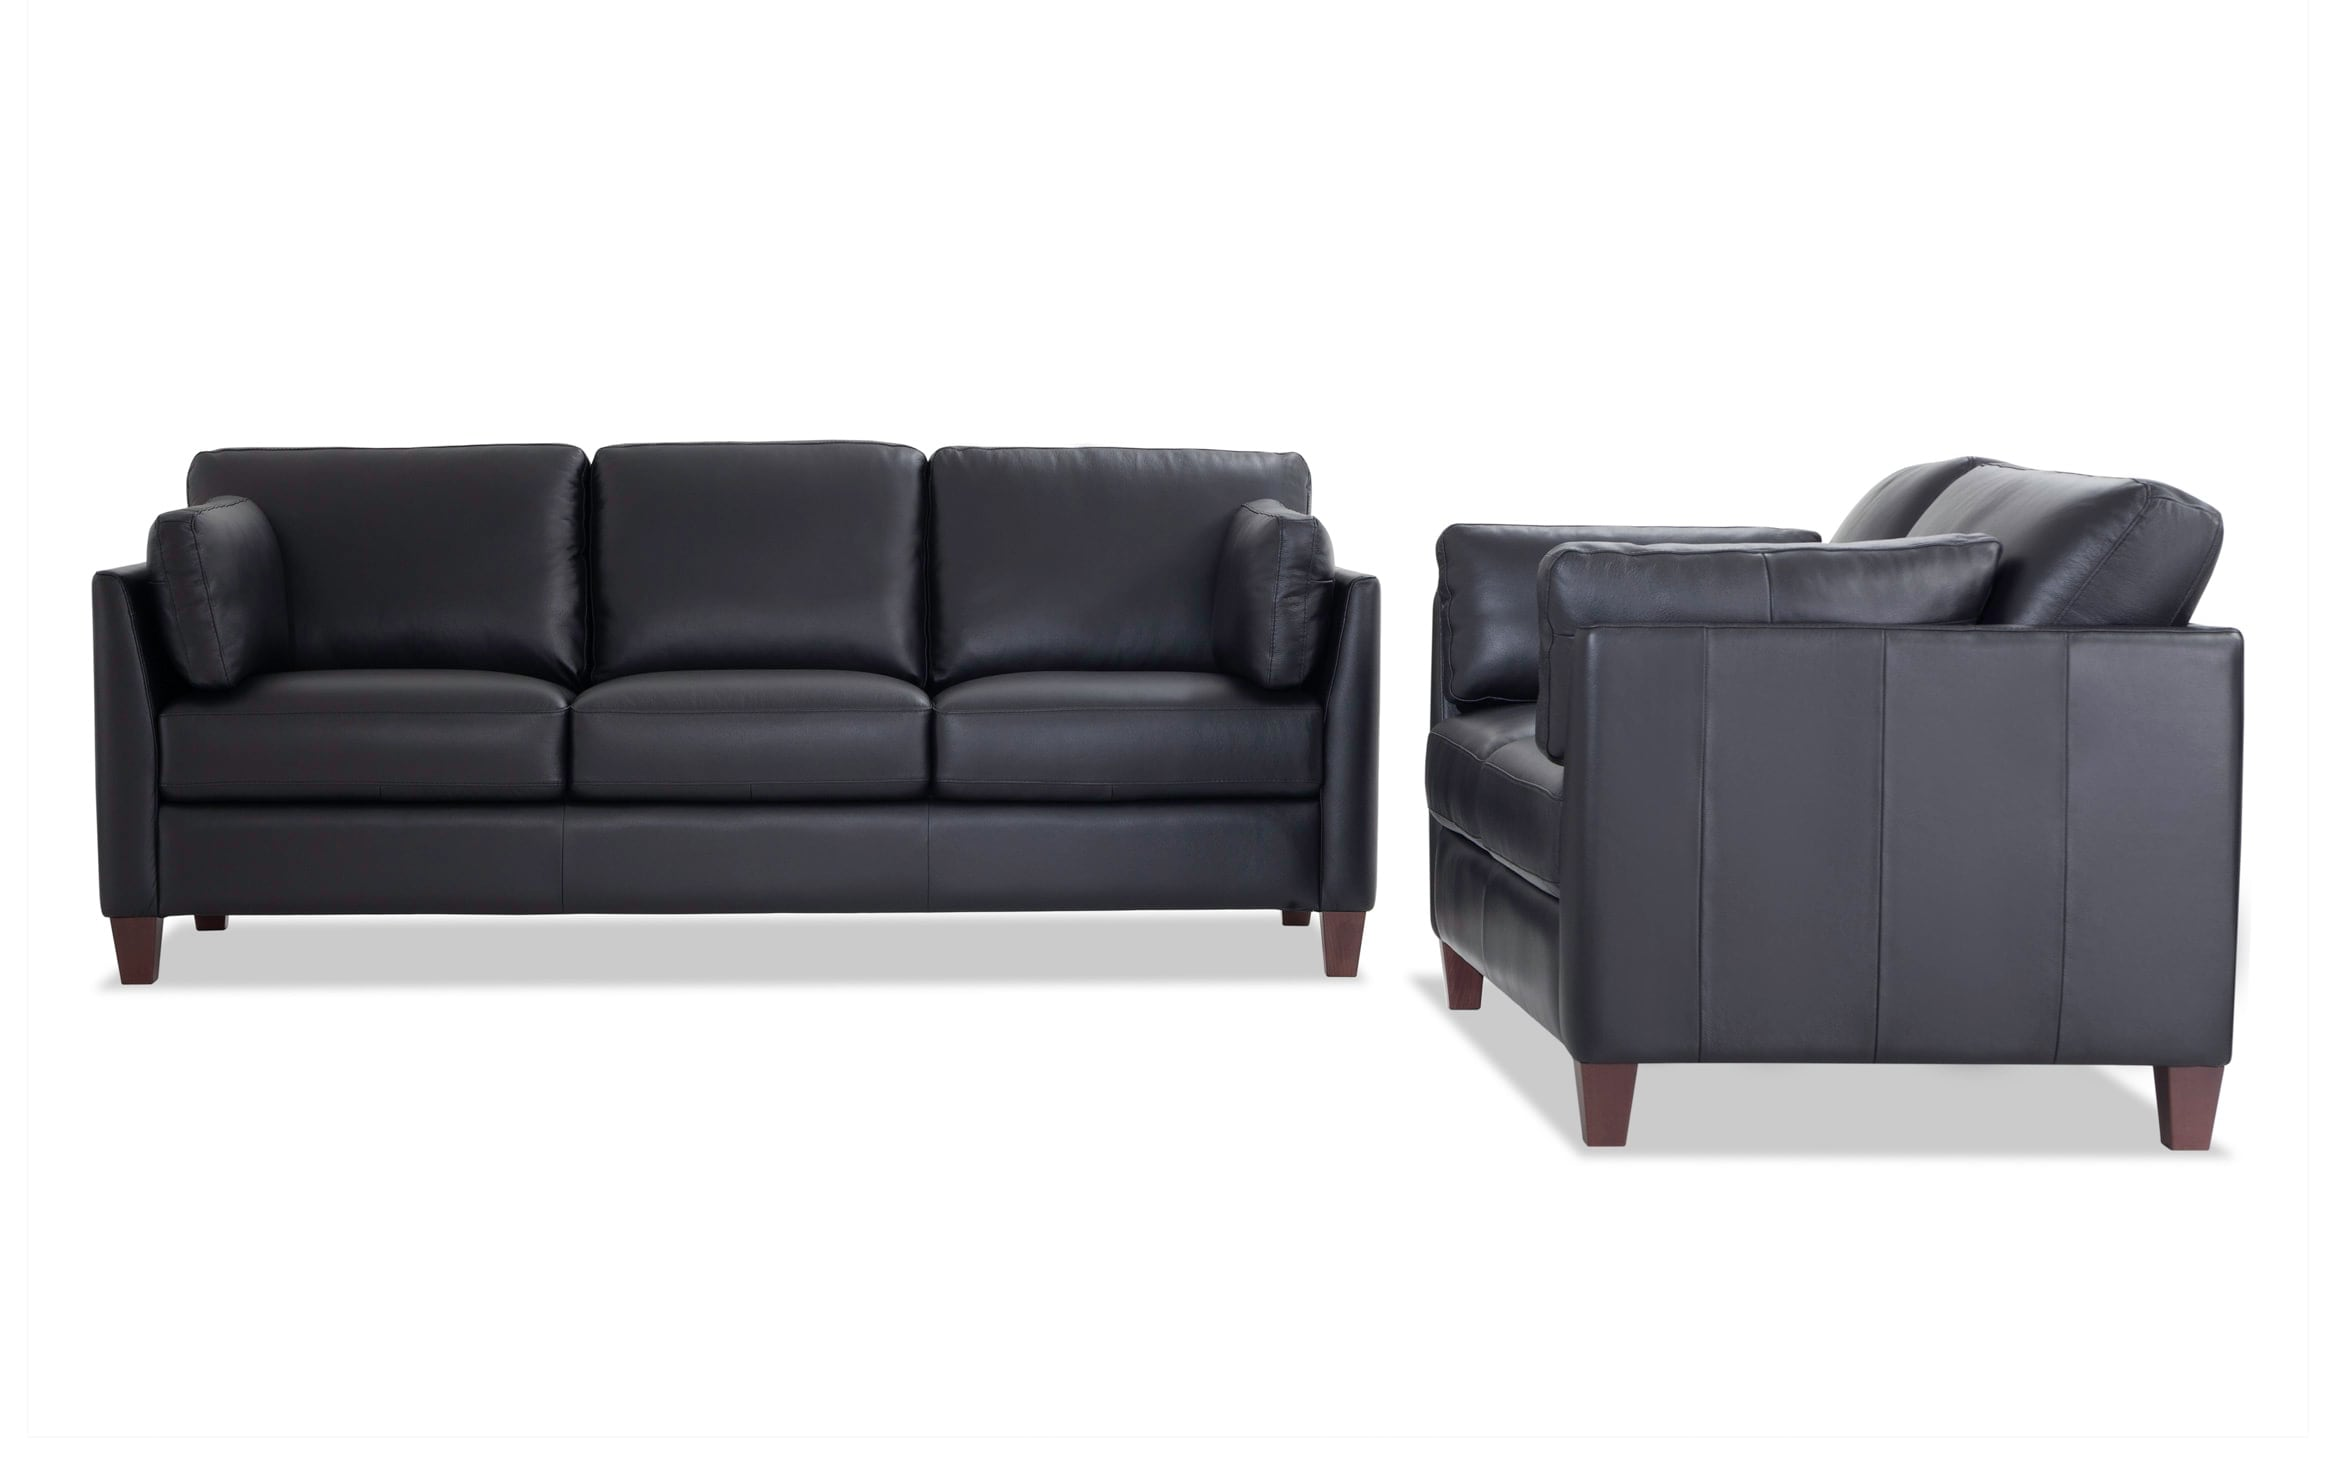 Antonio Black Leather Sofa Loveseat